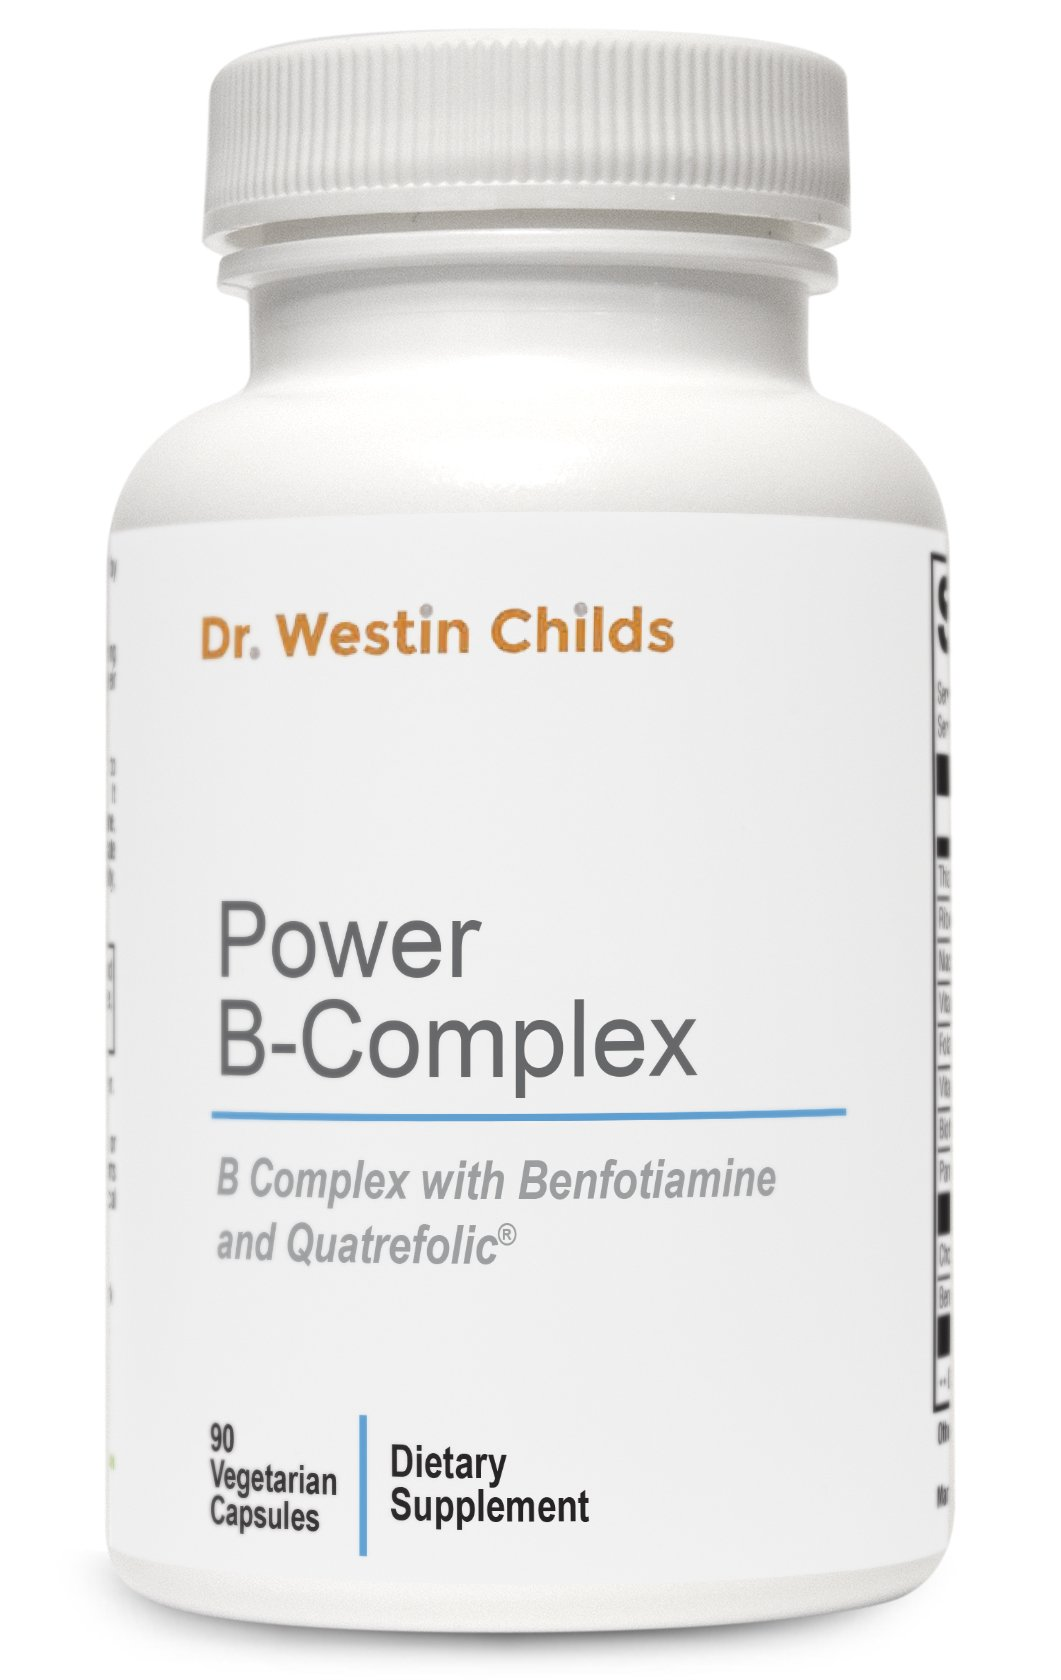 Power B-Complex - Highly Absorbed, Pre-Methylated B Spectrum Vitamins + Benfotiamine Designed to Help Support Energy, Adrenal Function & The Stress Reponse - 45 Day Supply